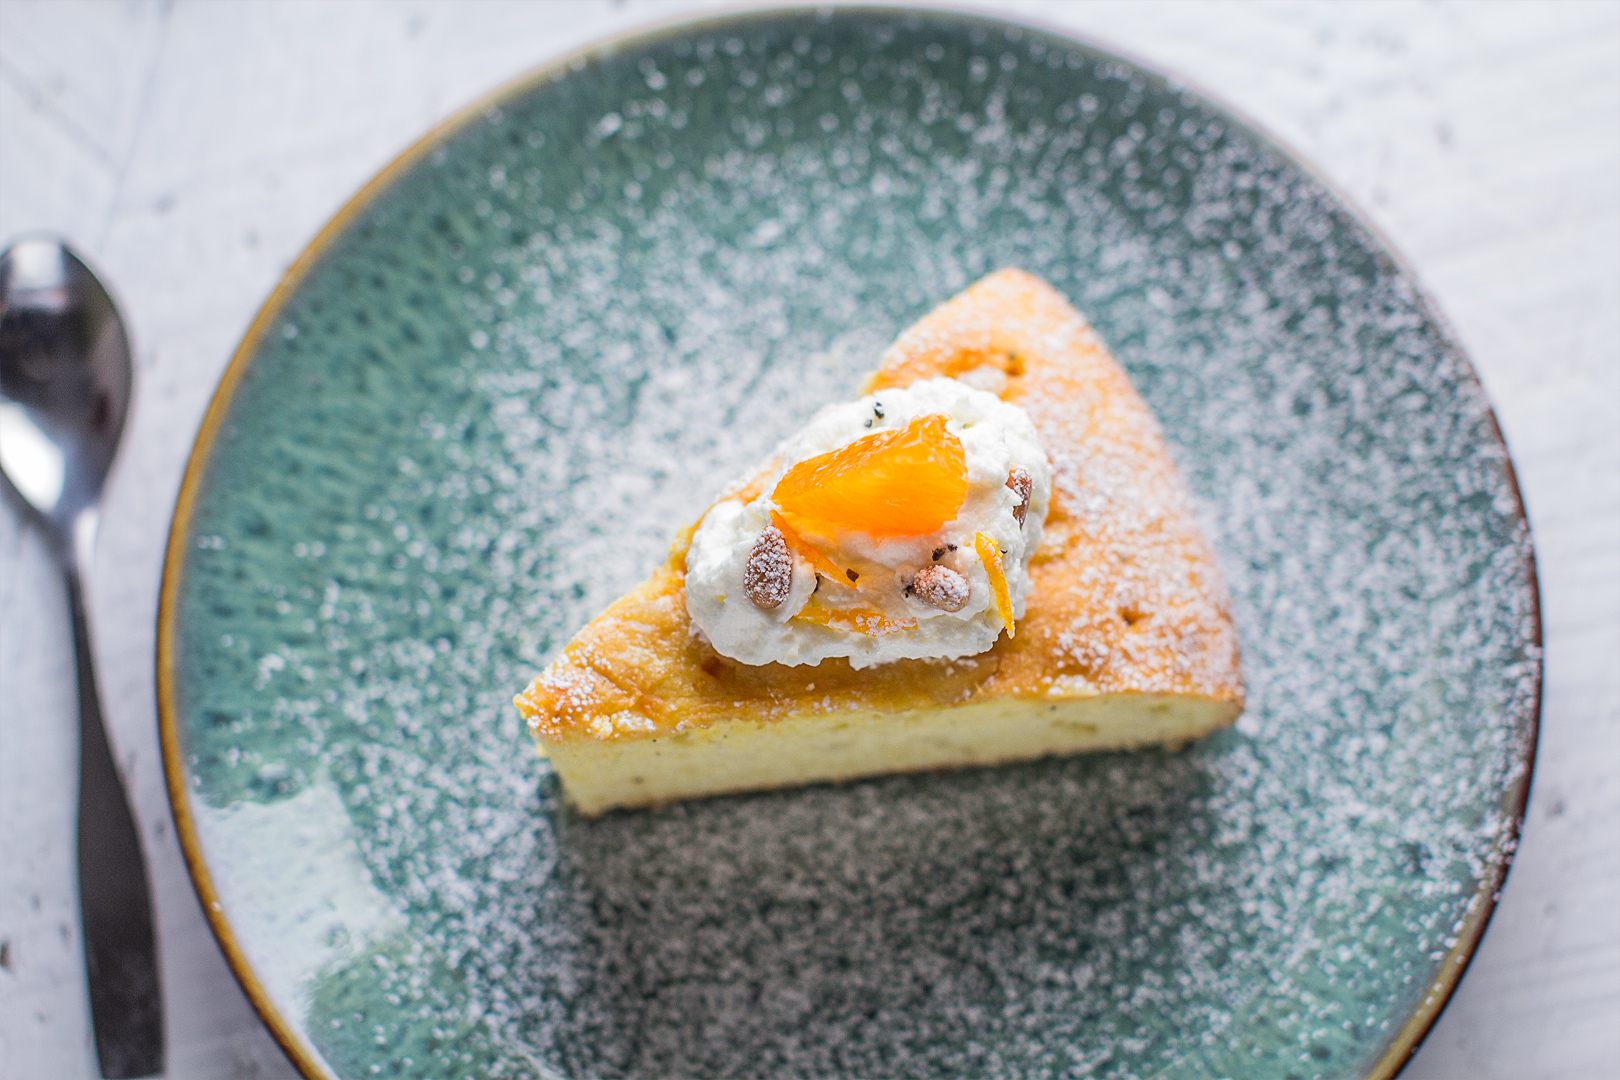 Satsuma and Cardamom Torta — the details